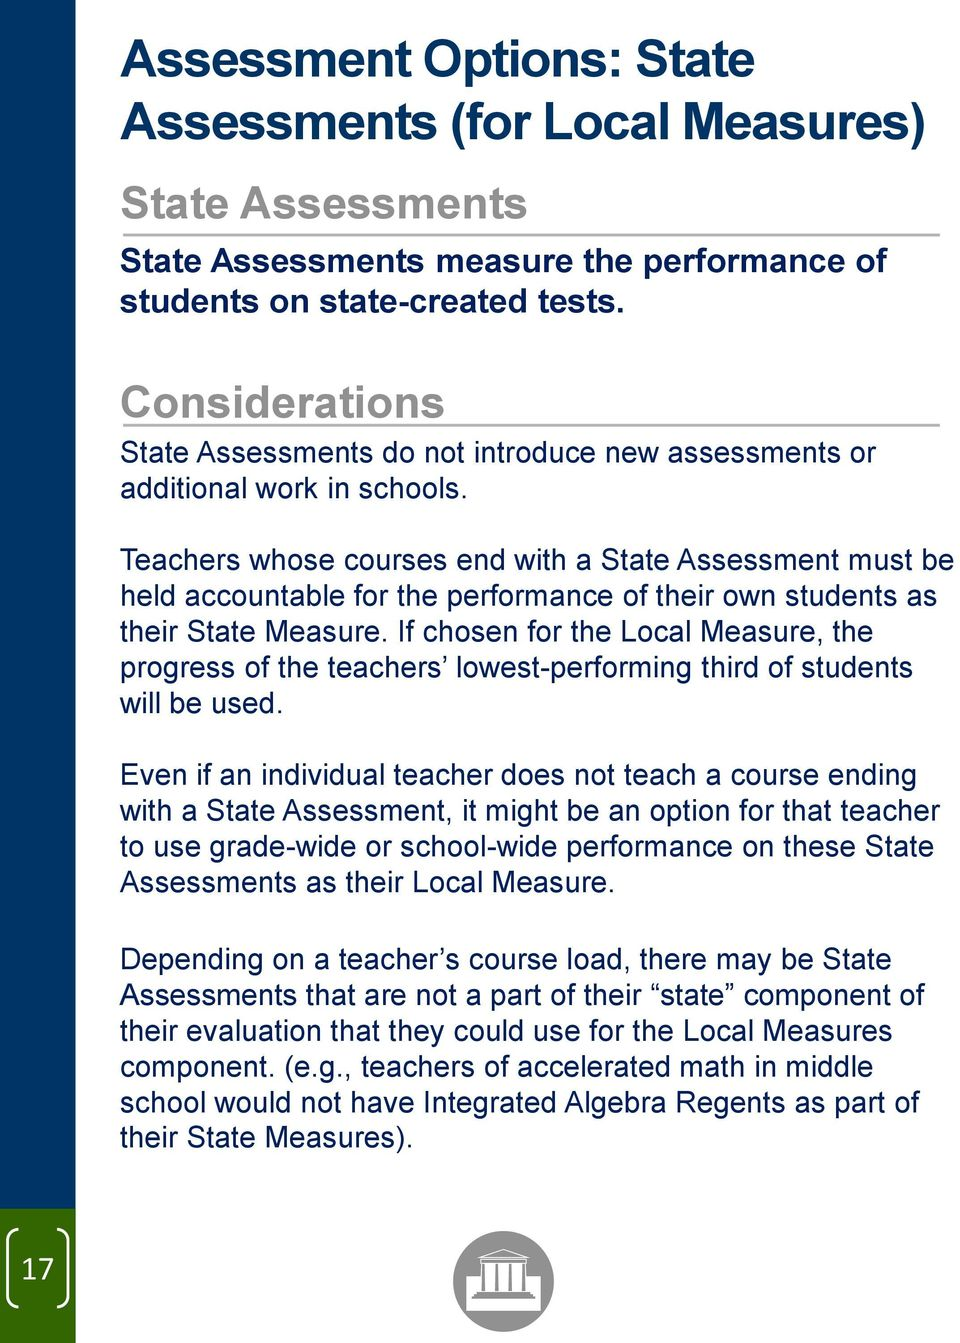 Teachers whose courses end with a State Assessment must be held accountable for the performance of their own students as their State Measure.